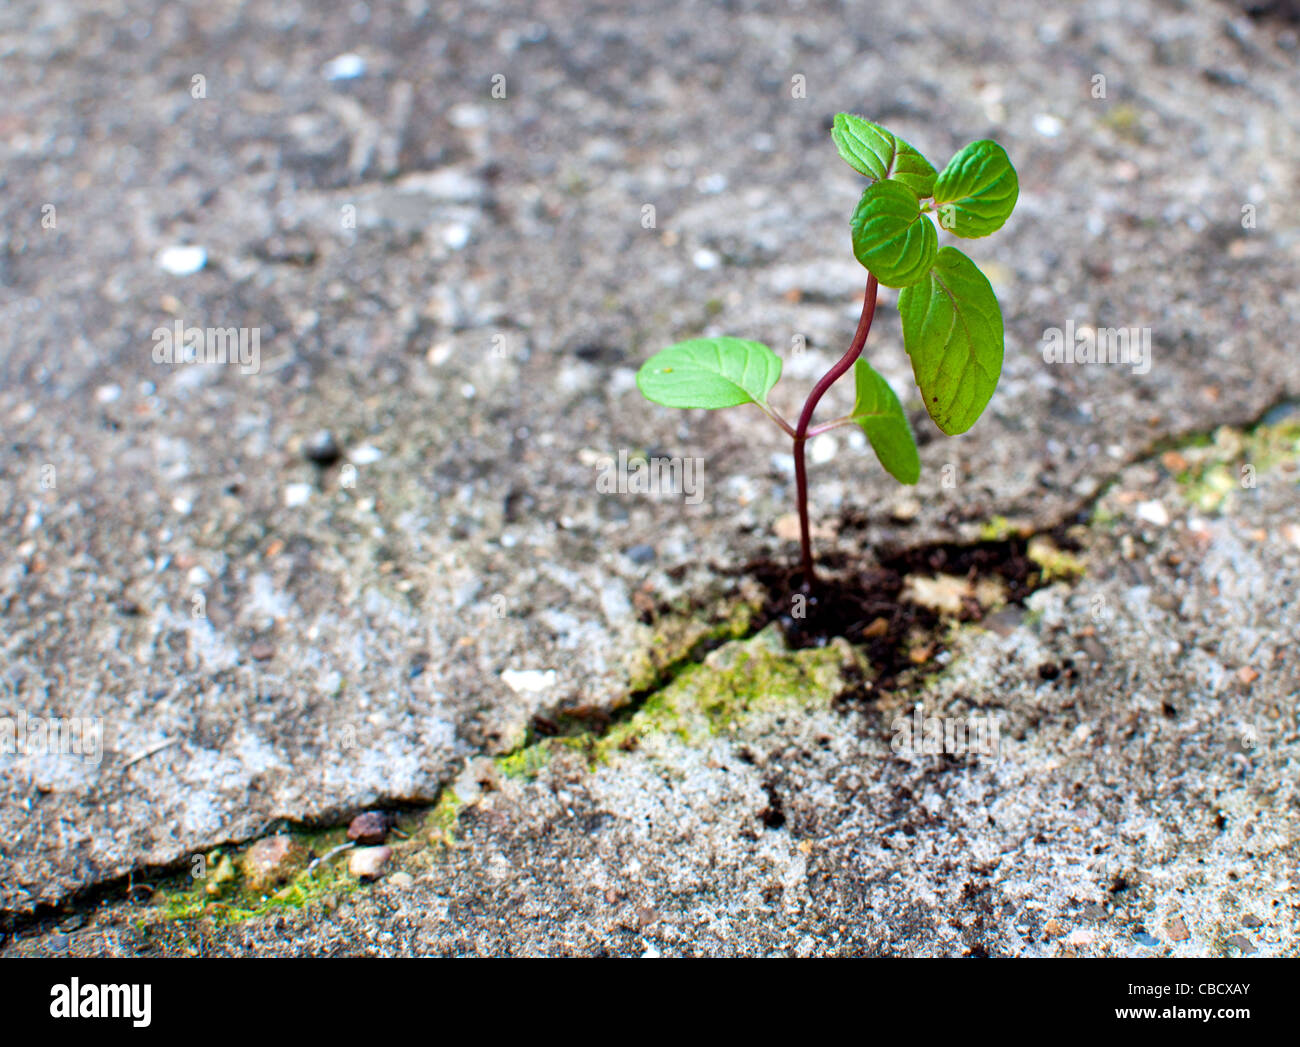 Young seedling emerging from a crack in the earth - Stock Image